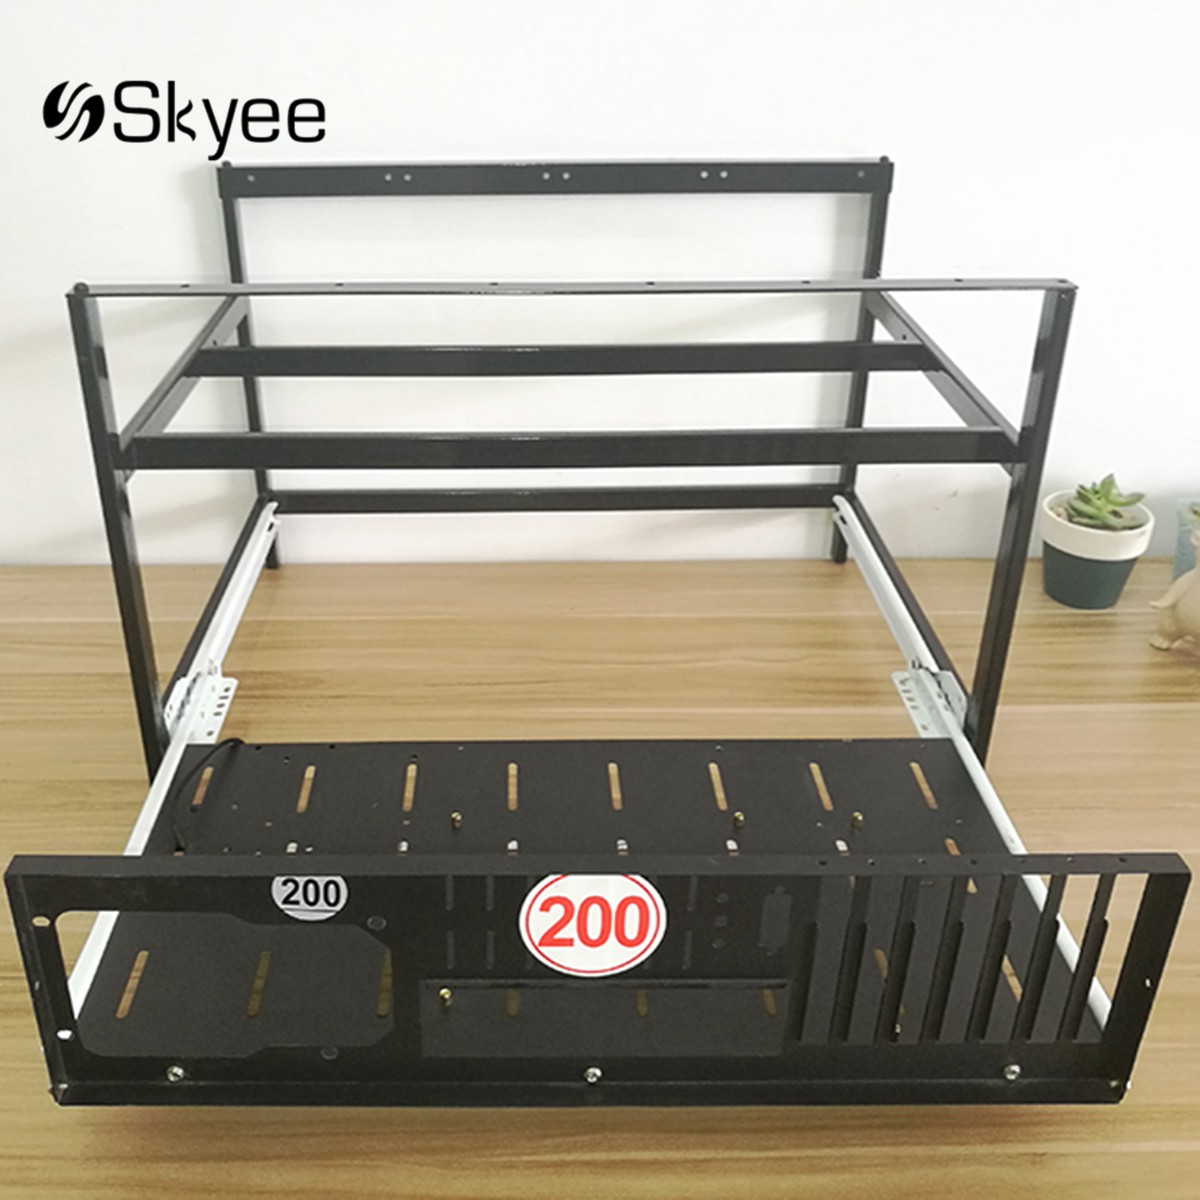 S SKYEE Open Air Mining Rig Push Pull Frame Miner Case For 6 GPU ETC BTH